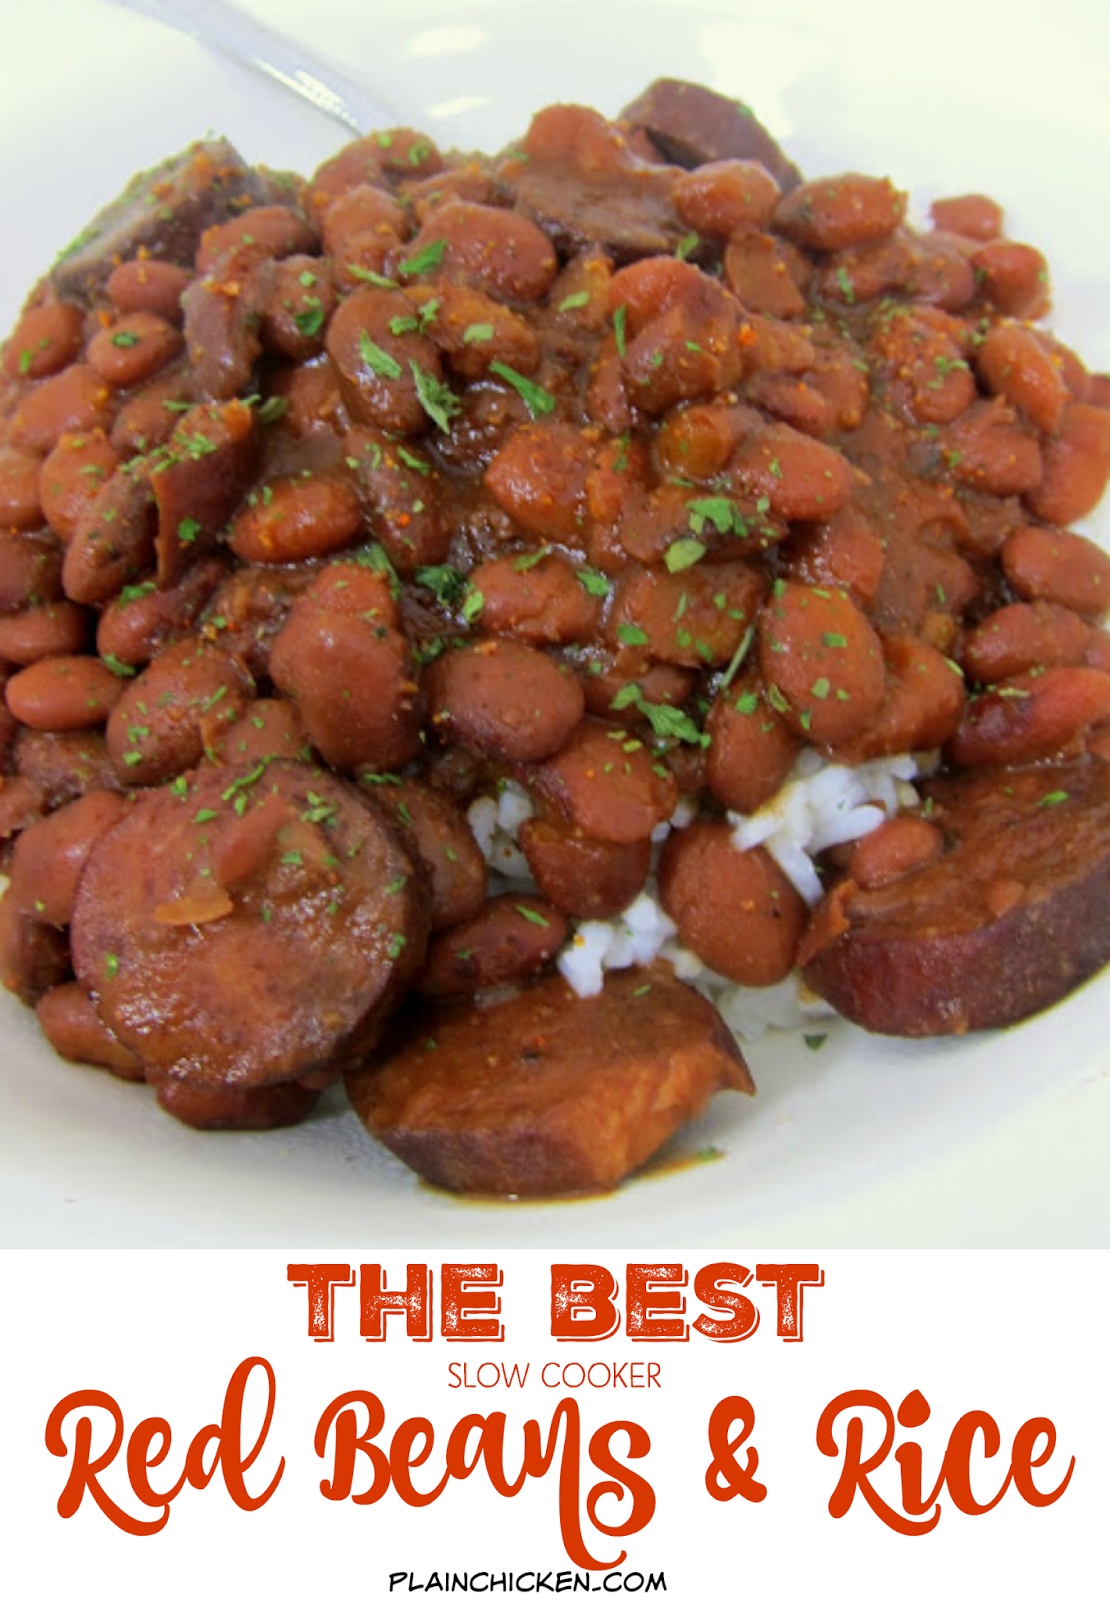 How to cook red beans and sausage in a crock pot